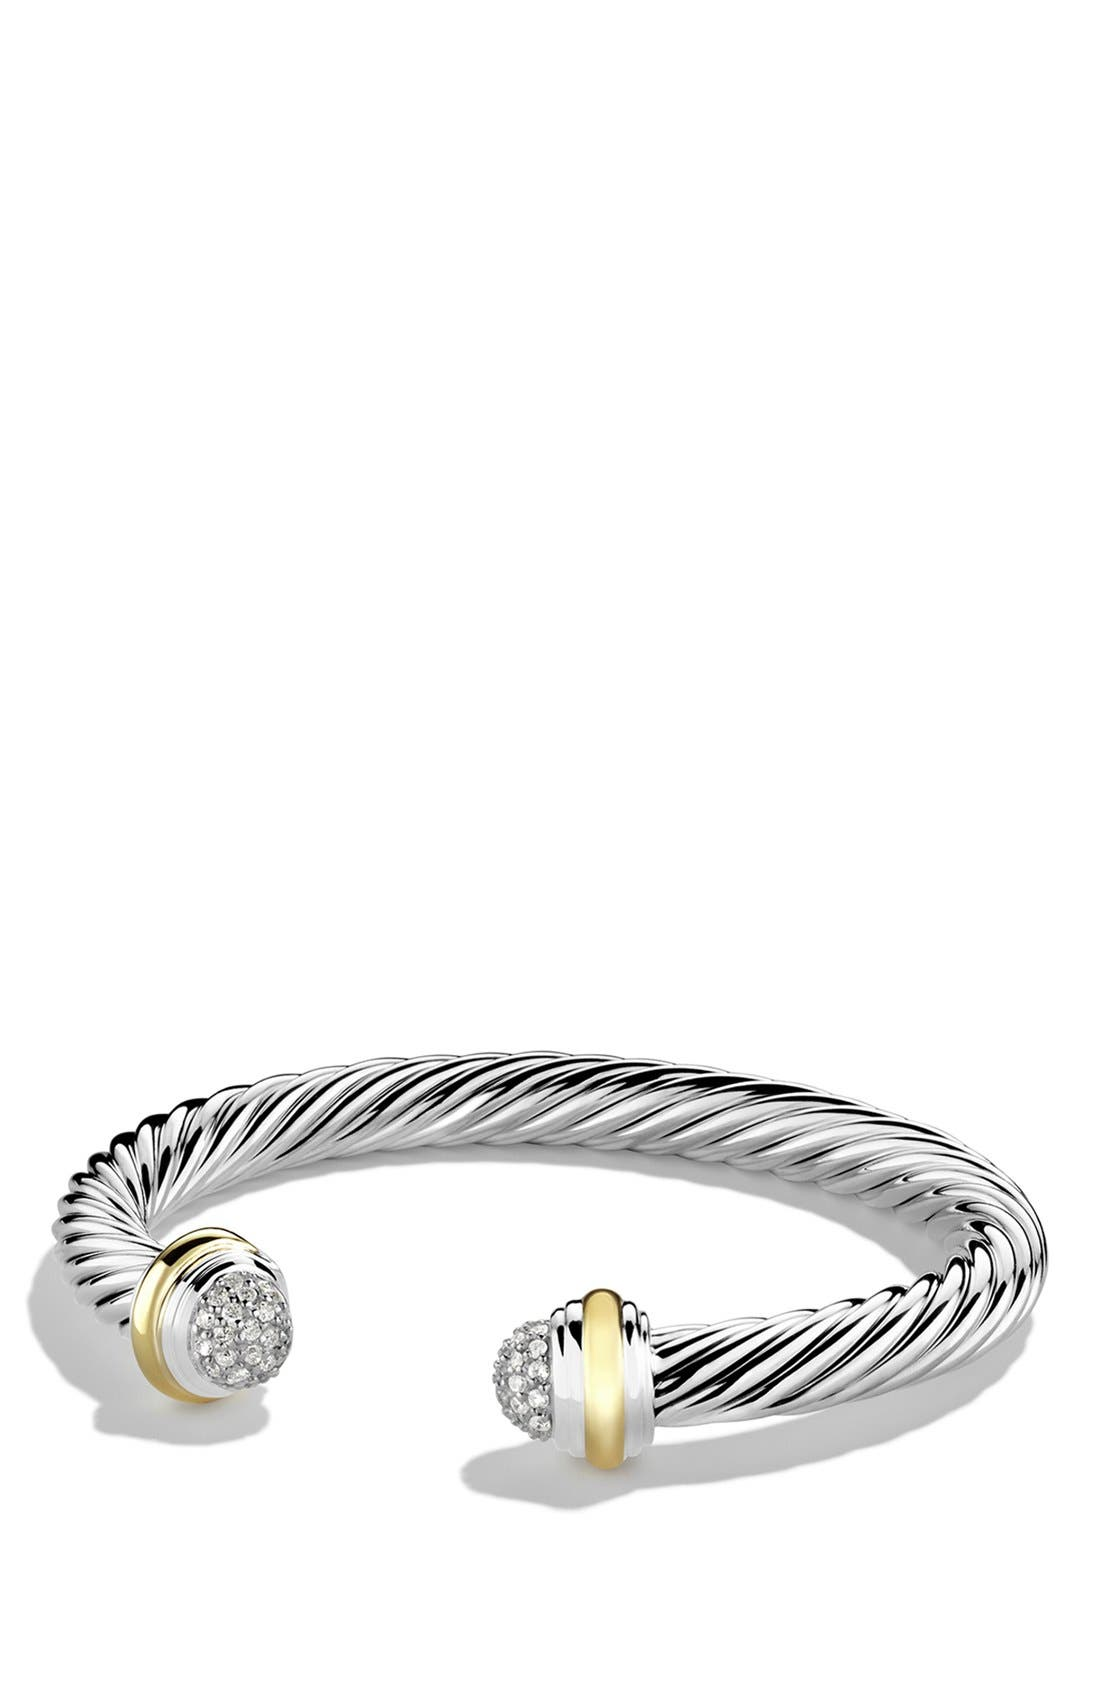 Cable Classics Bracelet with Diamonds and 18K Gold, 7mm,                         Main,                         color, Diamond